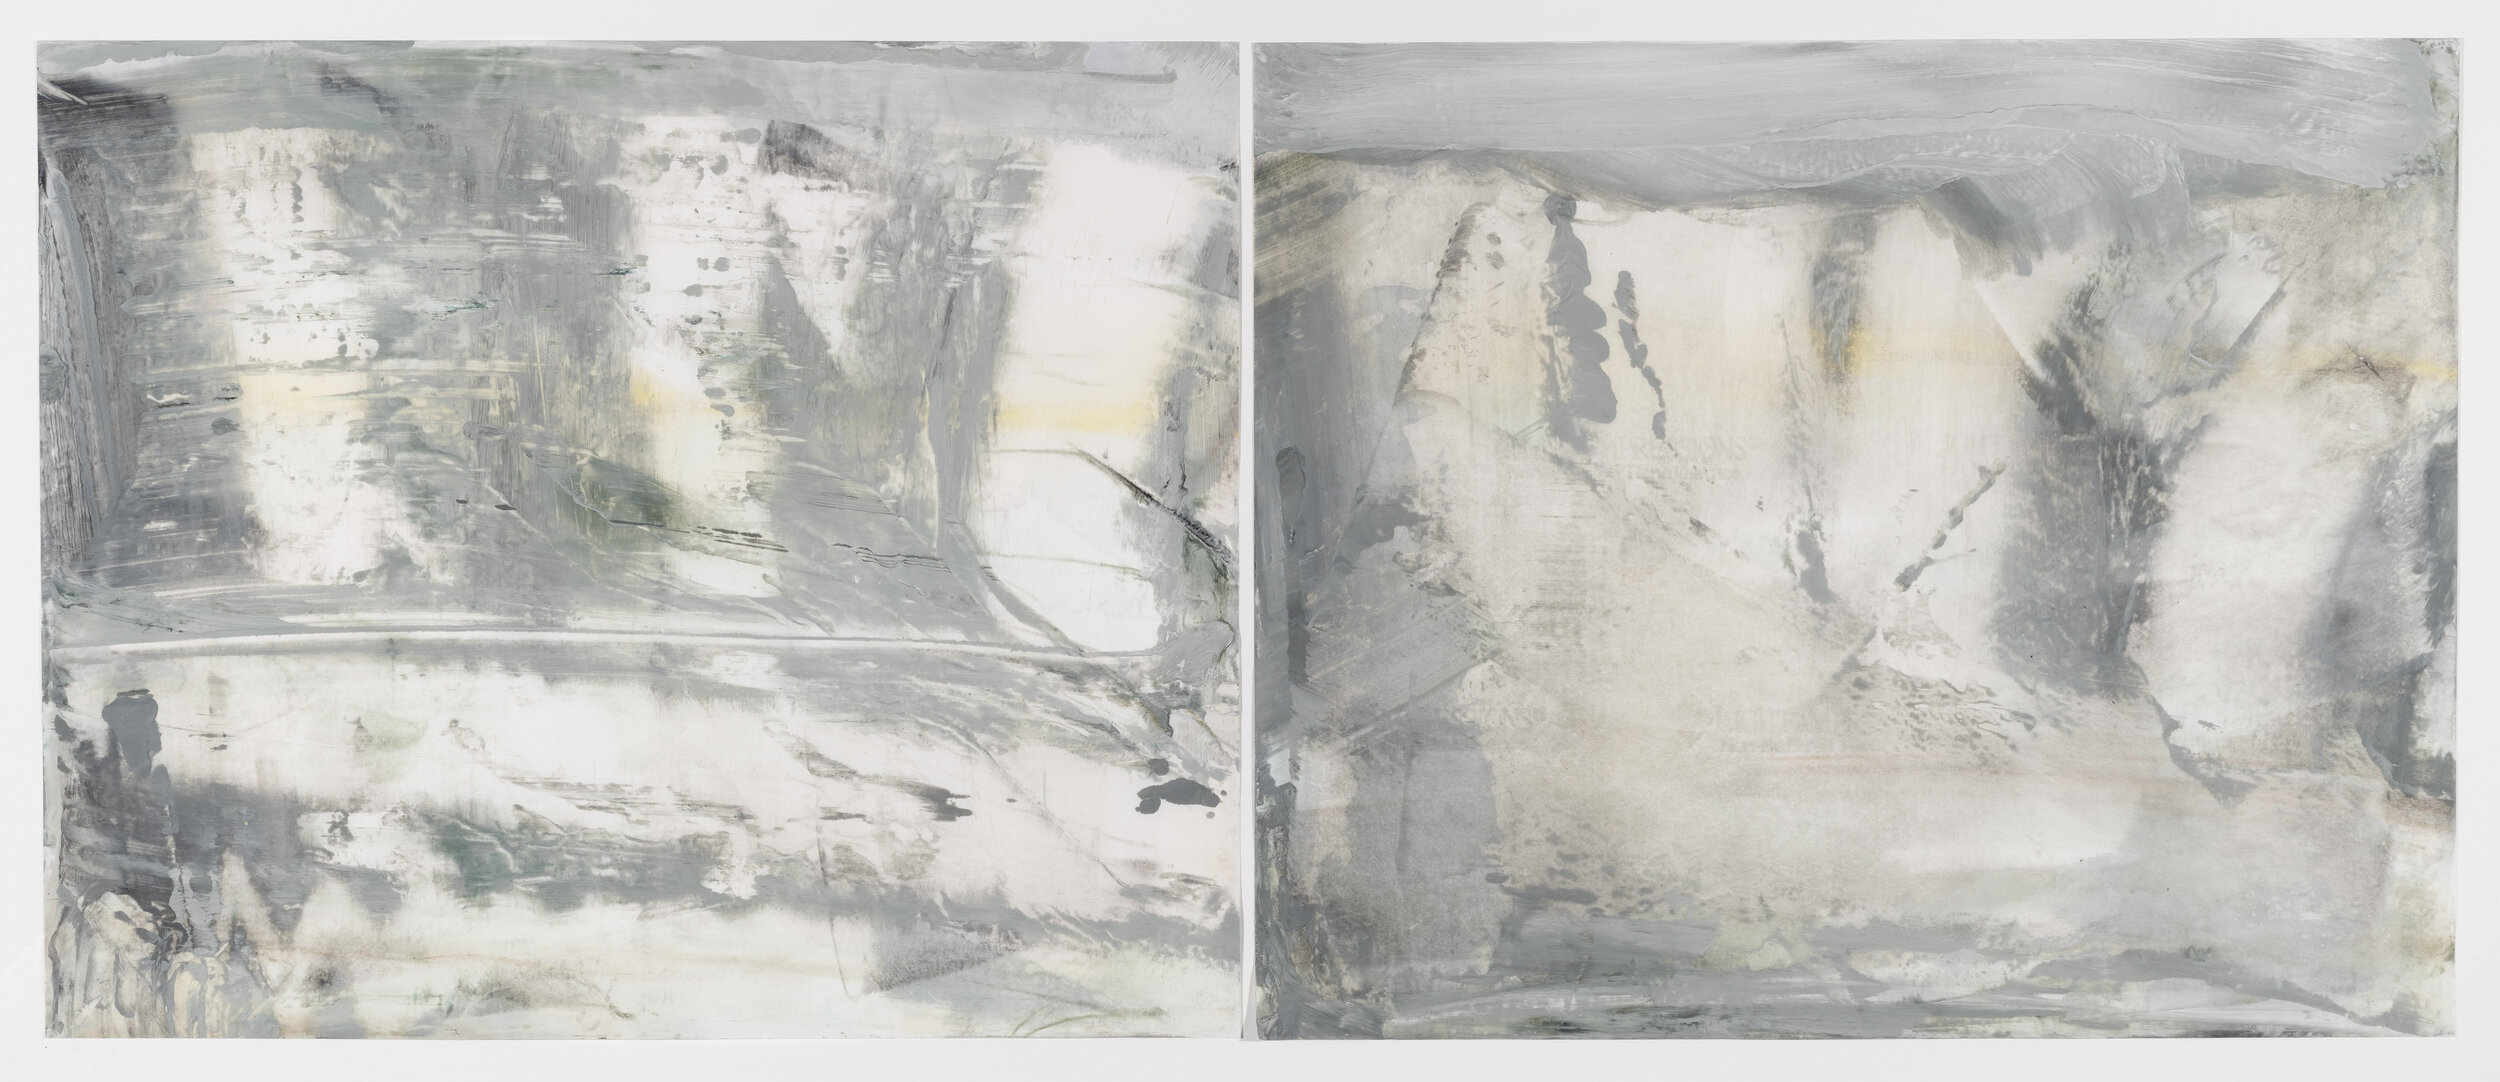 Wyborg, 2019, diptych, encaustic wax on Japanese rice paper, 32 x 56 in, $5,000